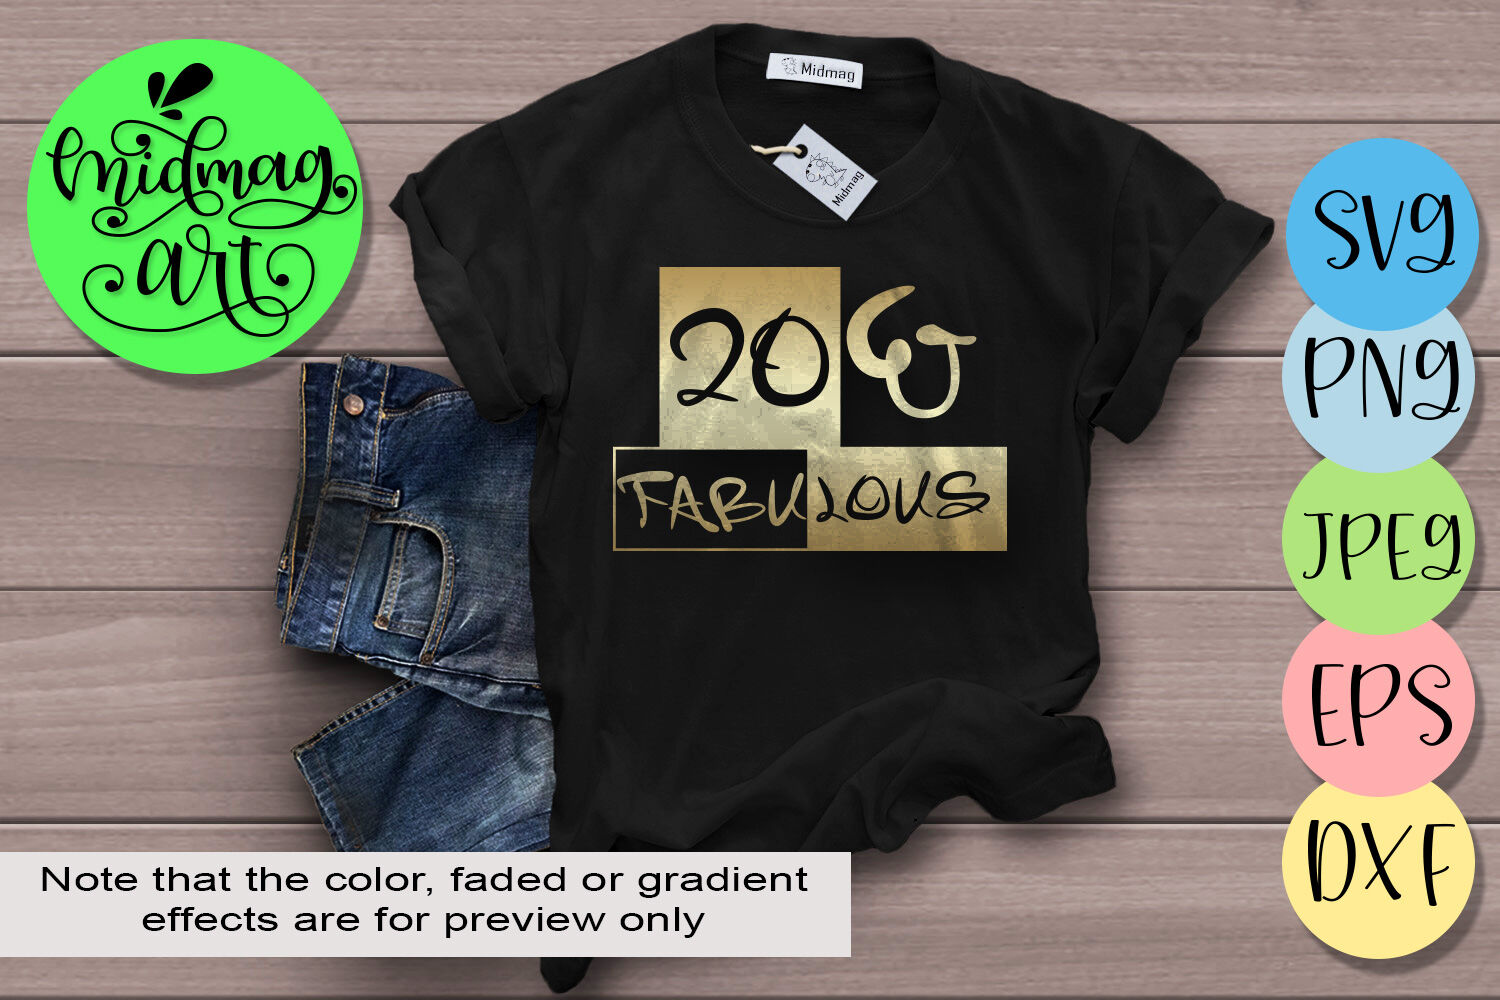 20 And Fabulous Svg 20th Birthday Svg By Midmagart